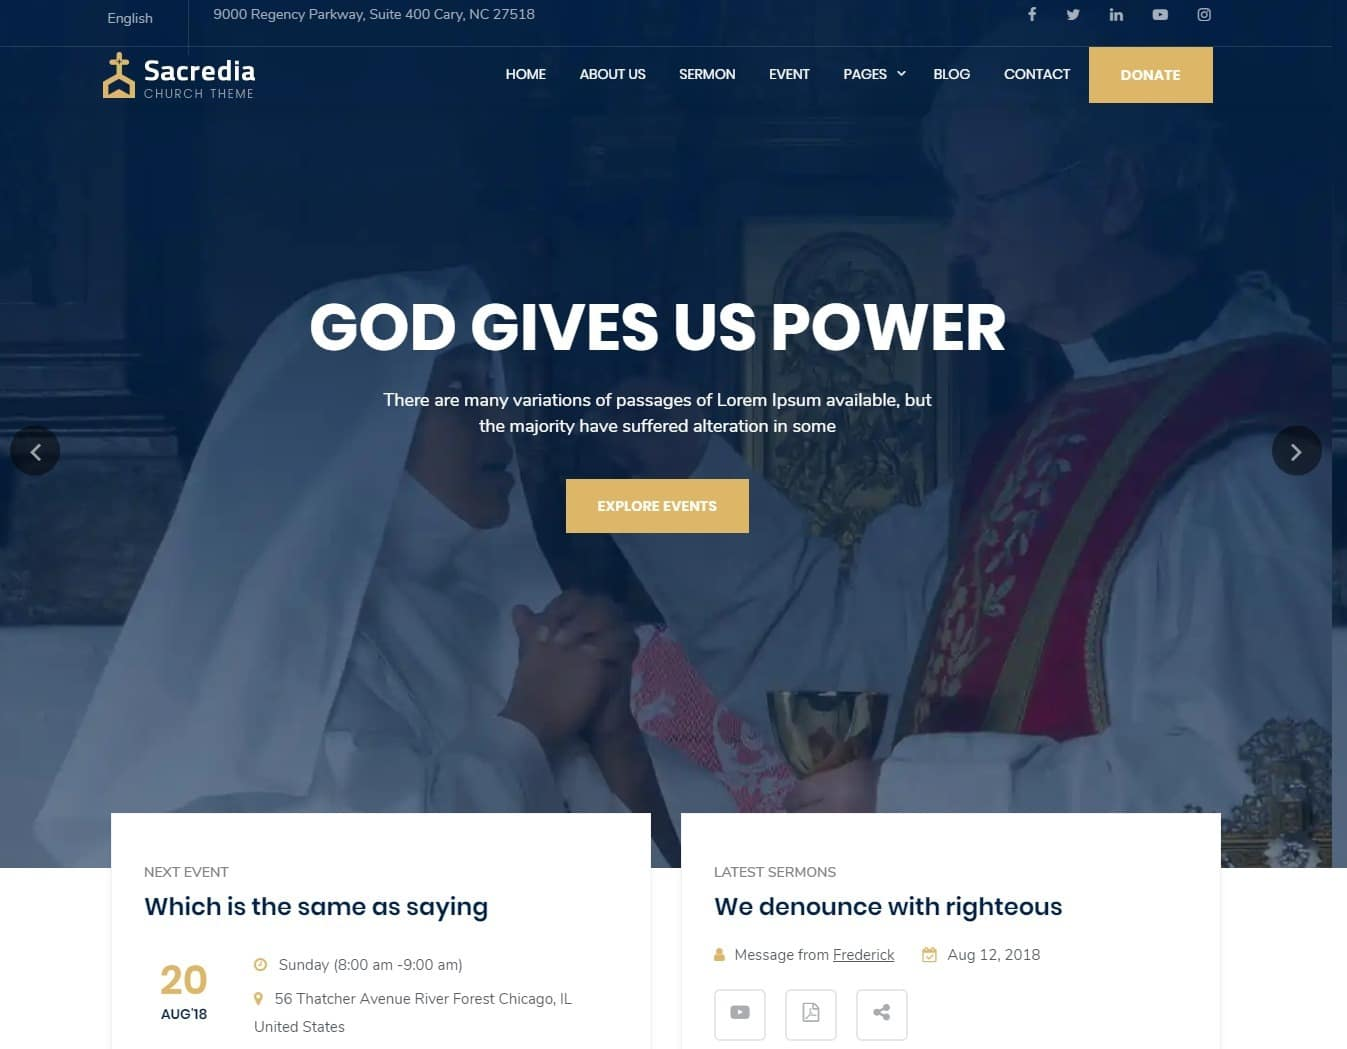 sacredia-html-church-website-template